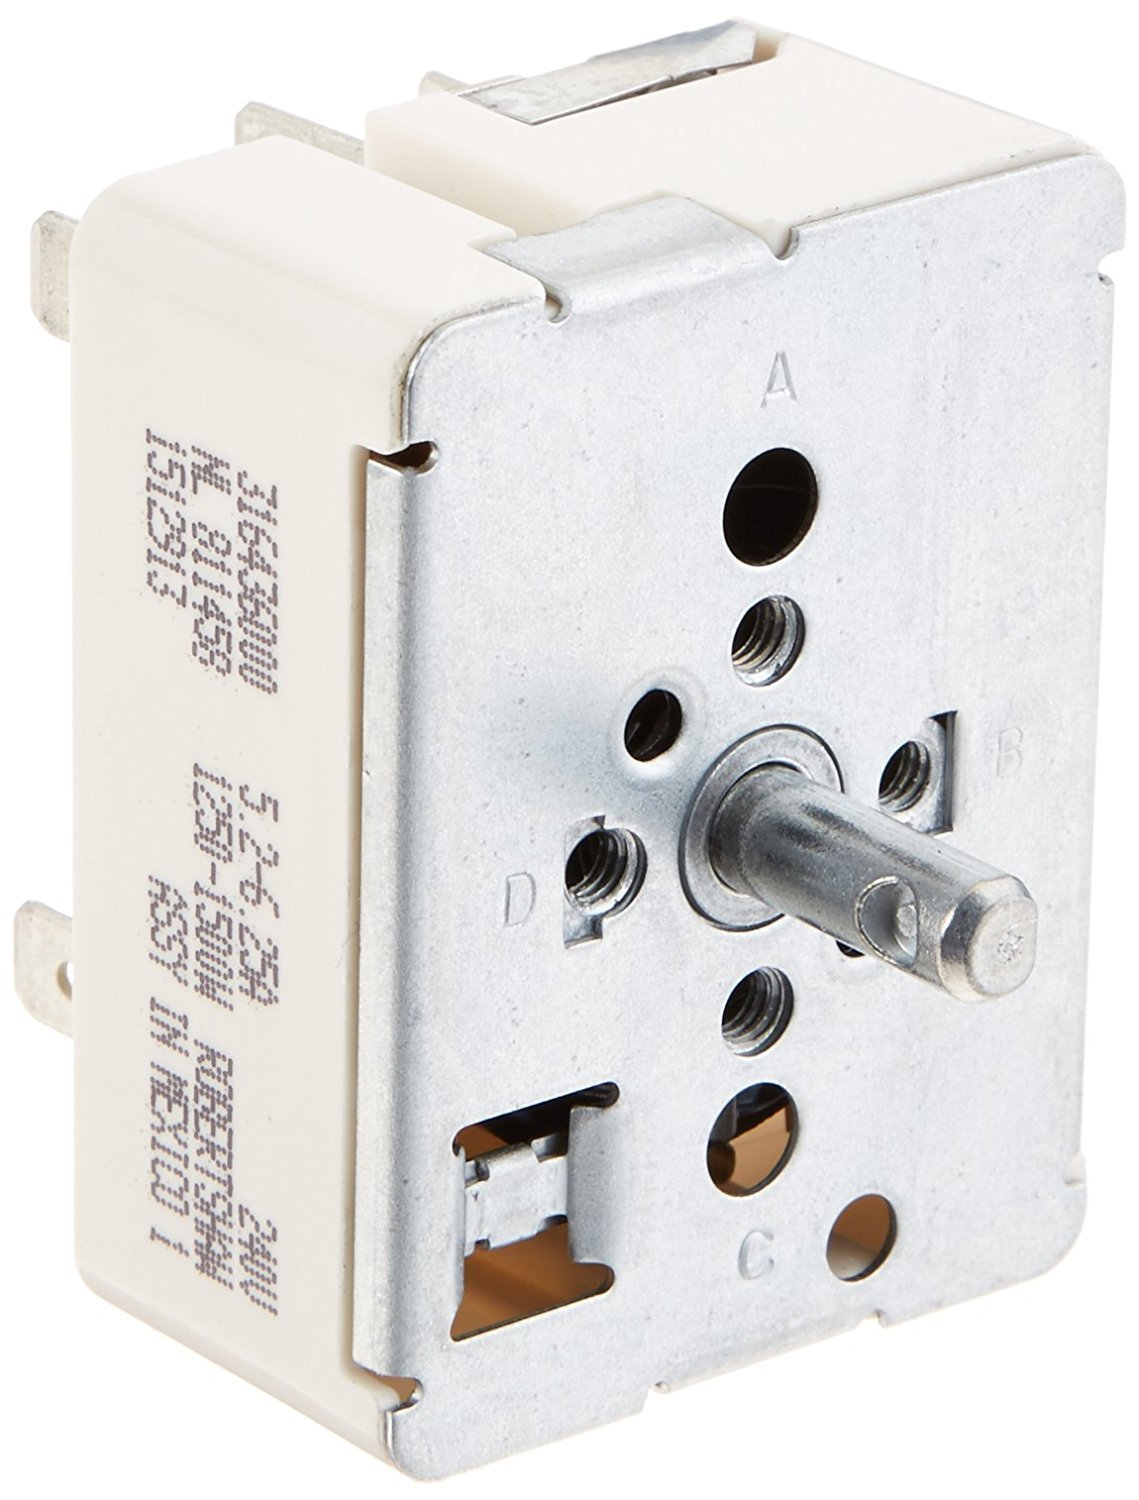 Kenmore / Sears 79094113400 Burner Switch Replacement